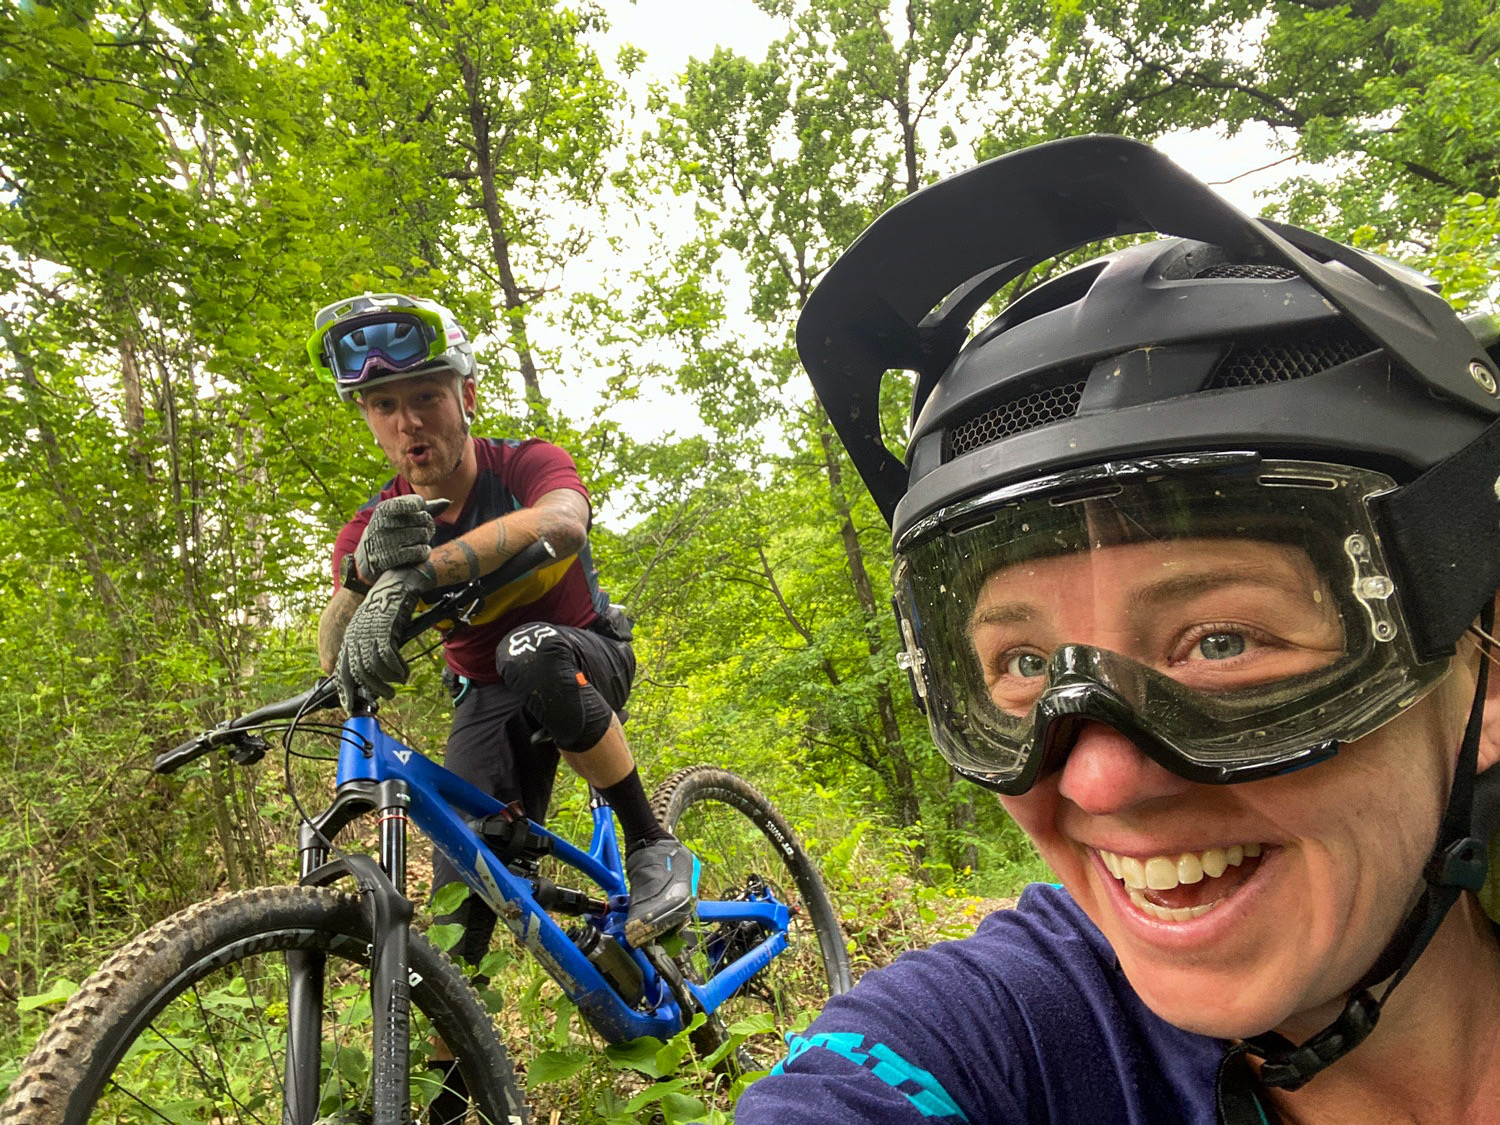 Life Partners as Trail Partners: A case for Dating Mountain Bikers, and Taking Lovers Mountain Biking